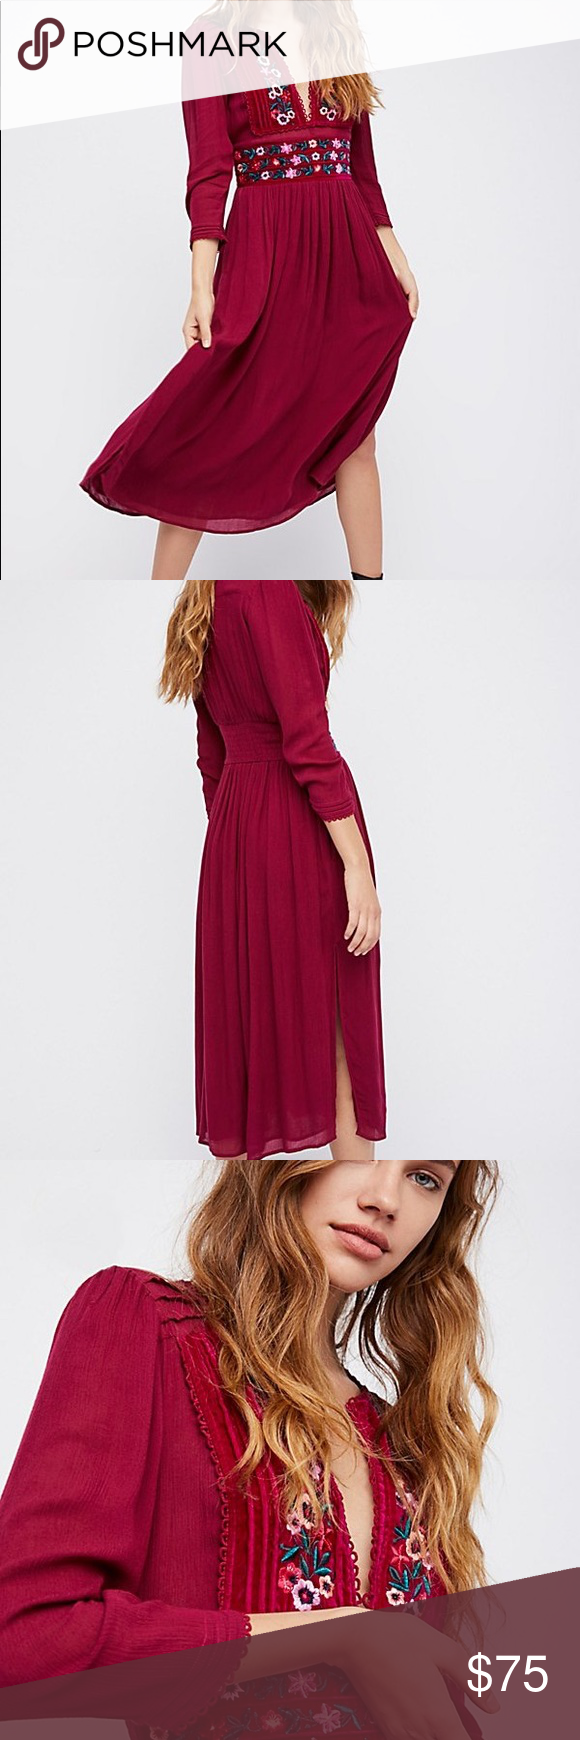 6a6fa7d4ee83 Free People Embroidered Midi dress Gorgeous dress. Color is raspberry. Last  pic is wrestler Brie Bella. Free People Dresses